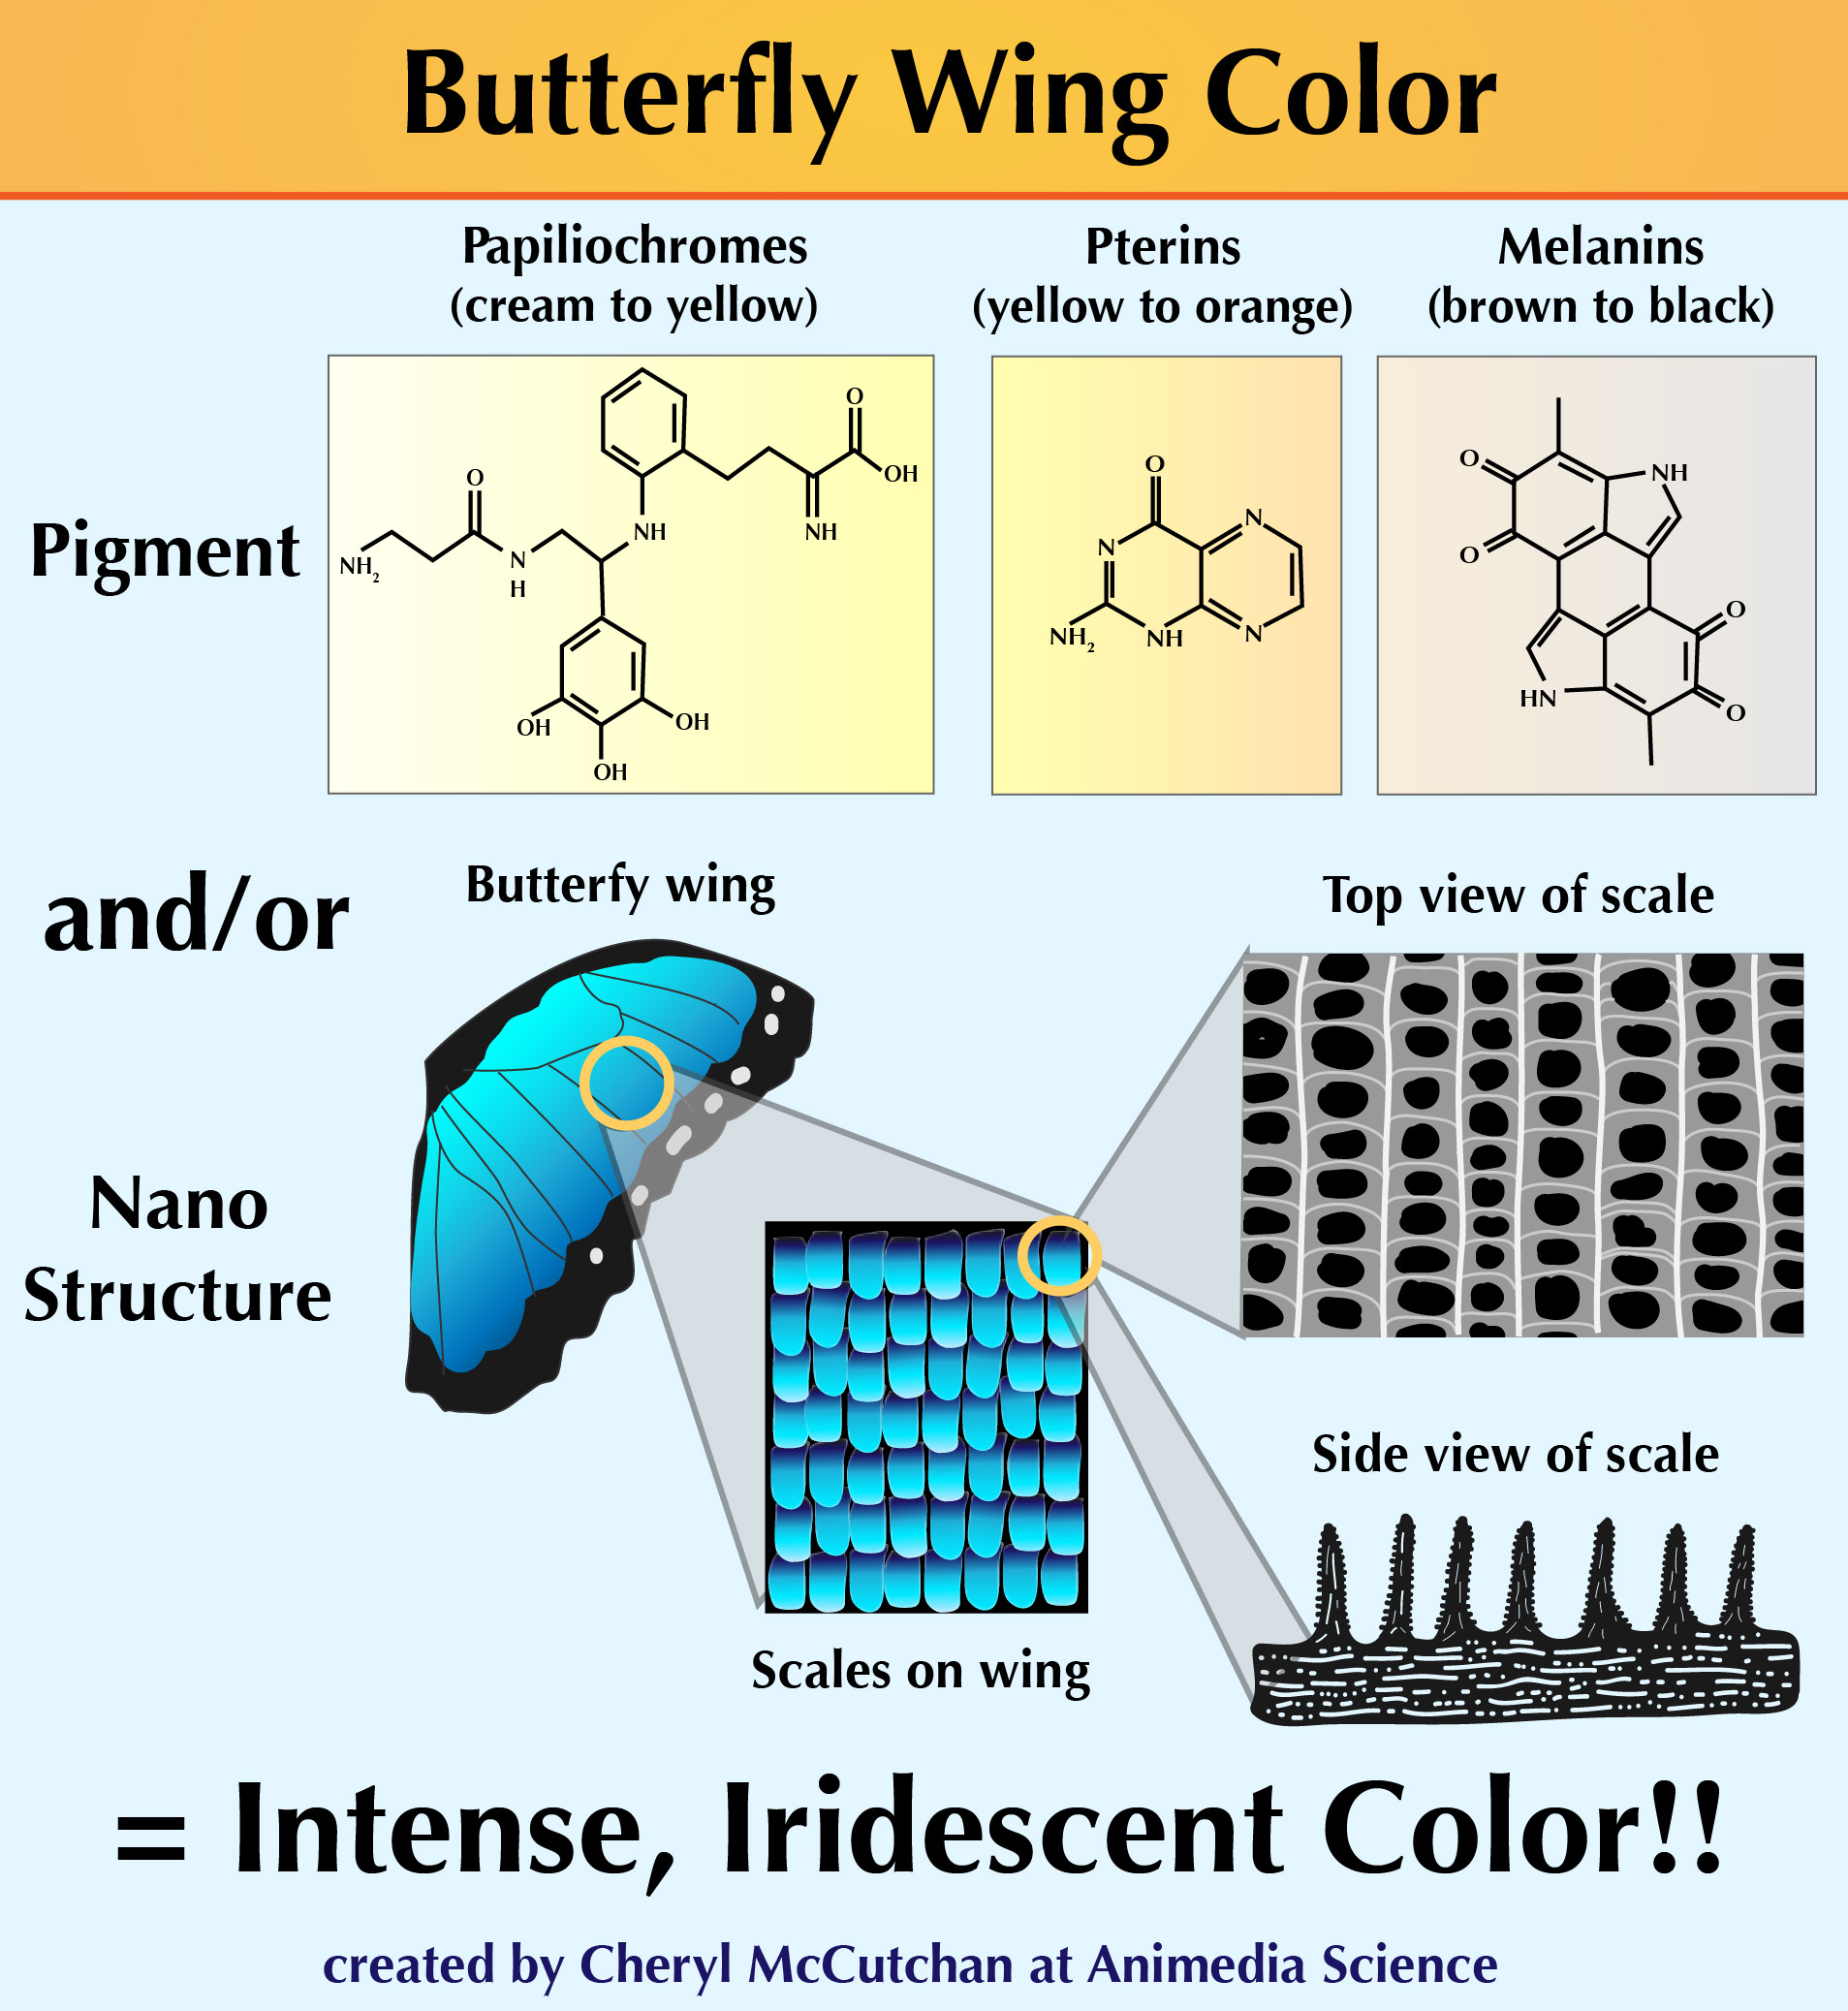 Butterflywing colors 2-01.jpg